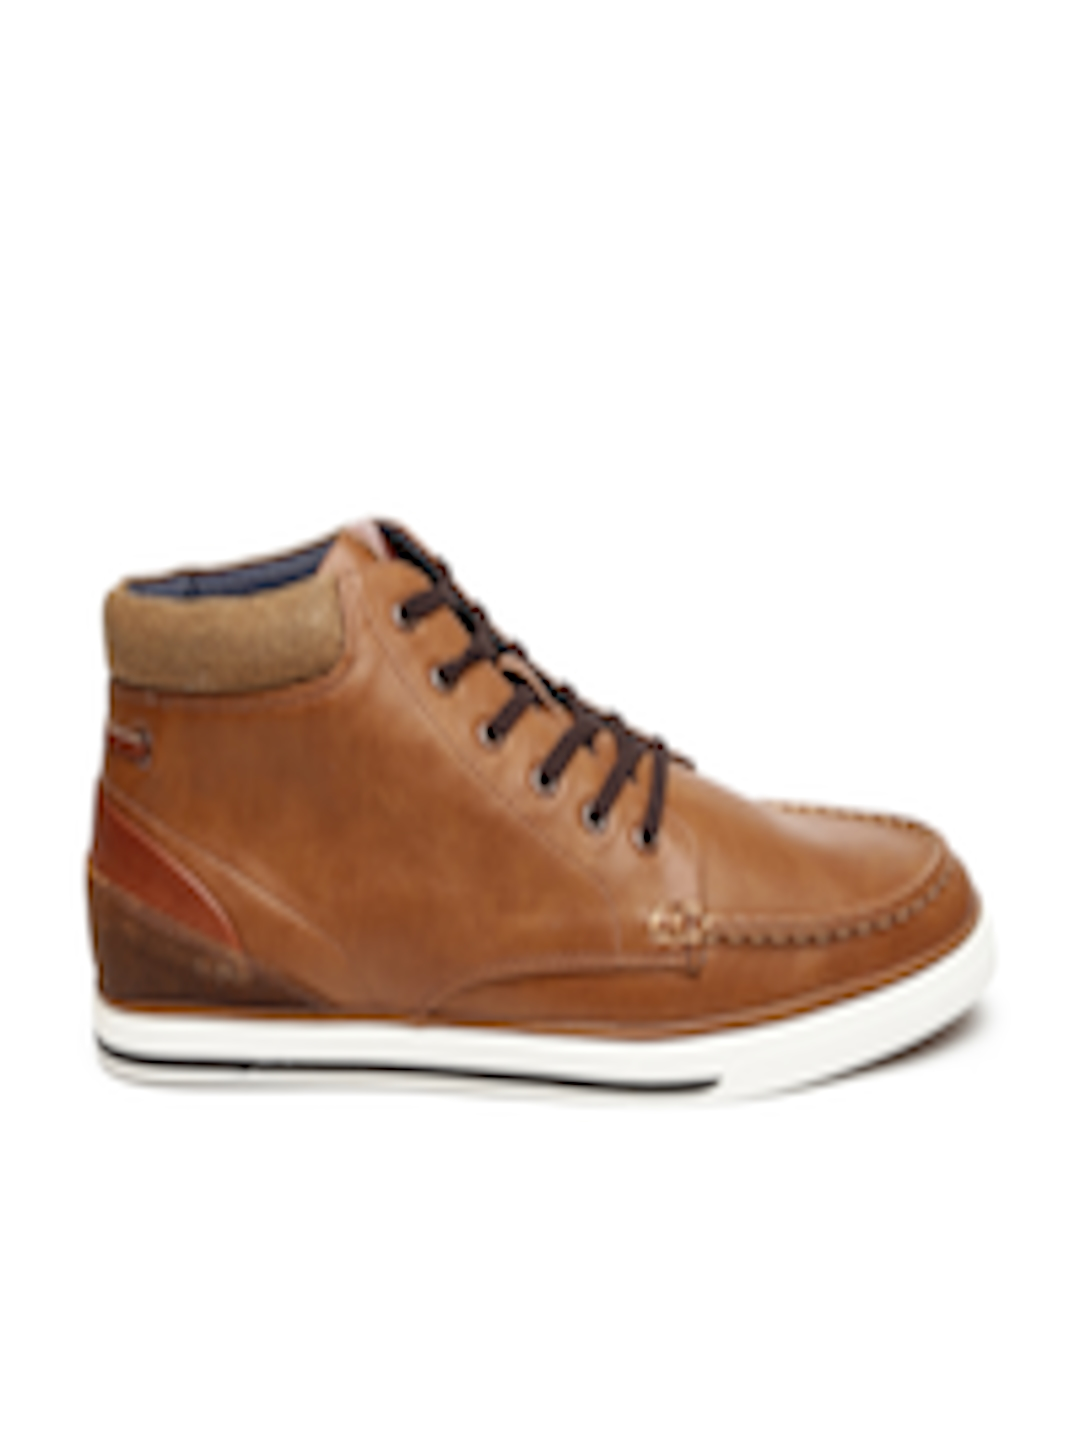 Buy Aldo Men Brown Solid Leather Sneakers Casual Shoes